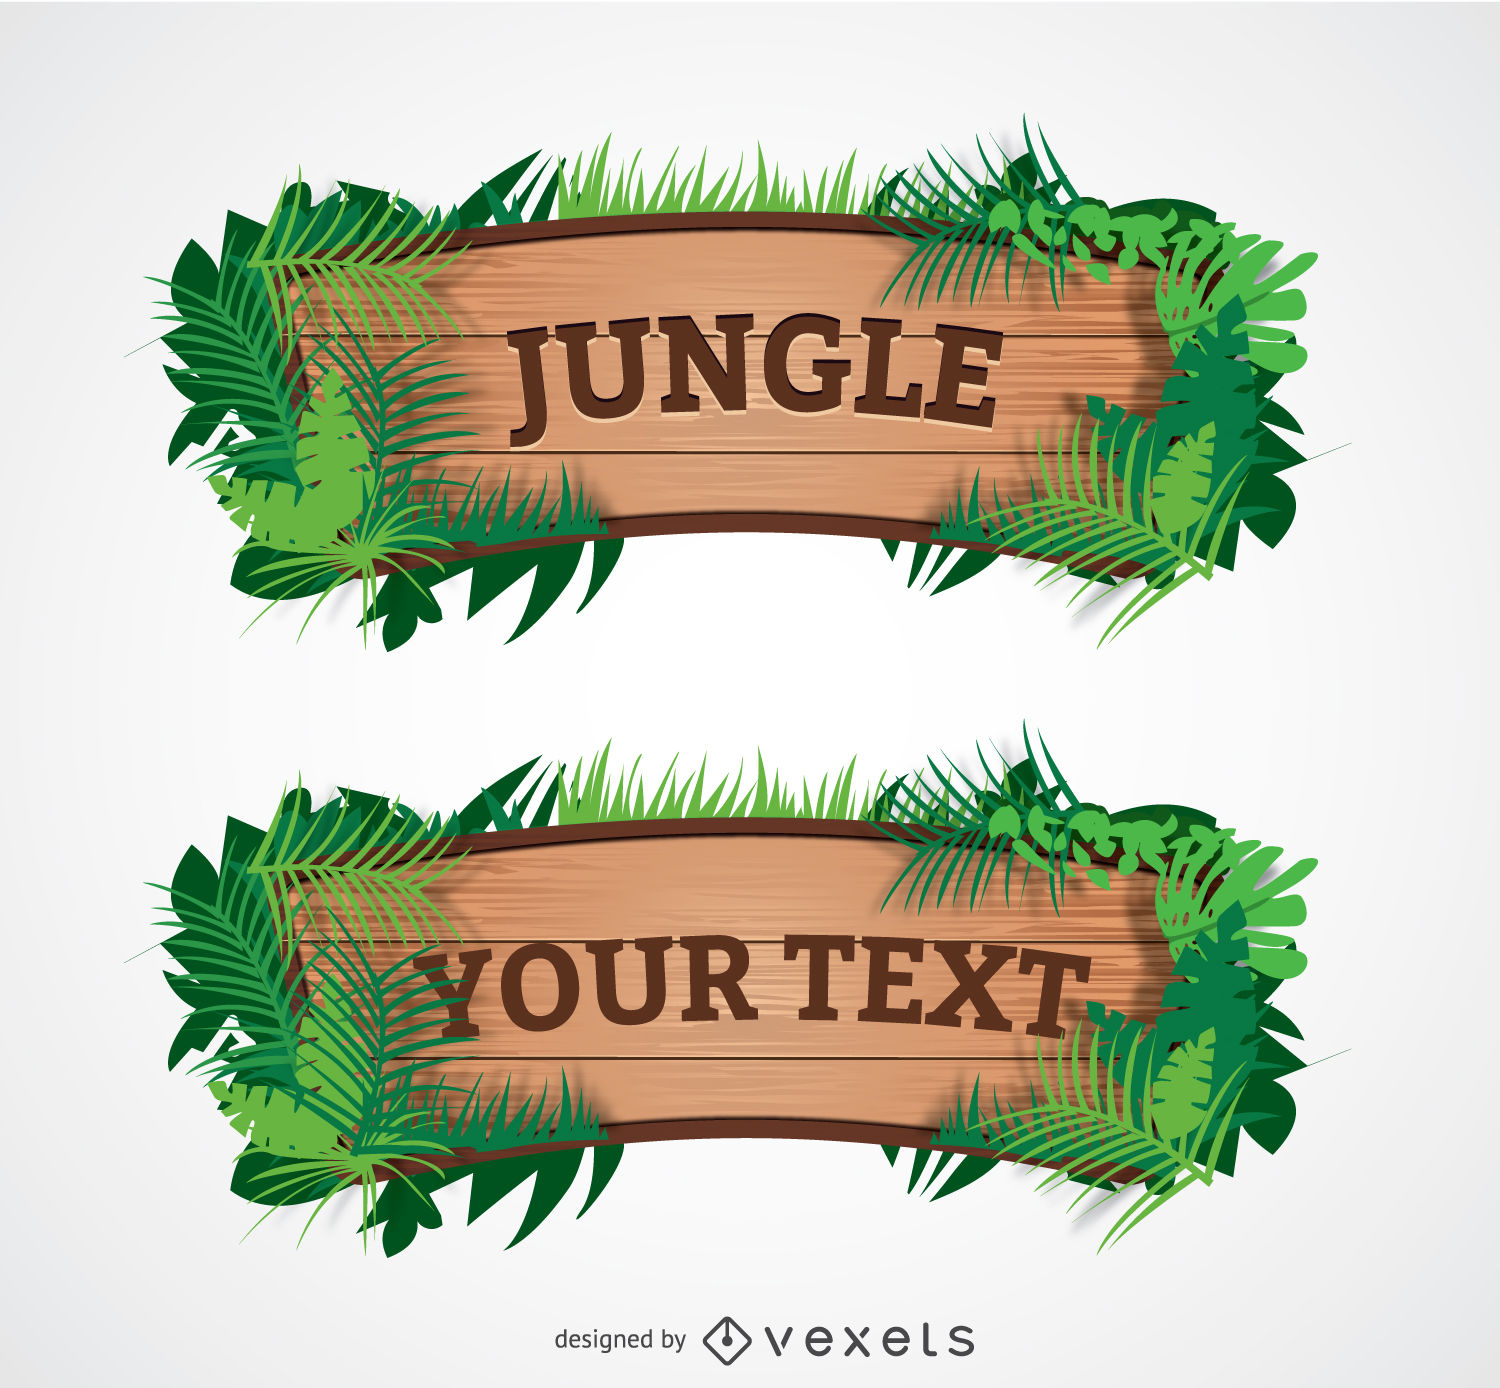 Jungle Vector & Graphics to Download.